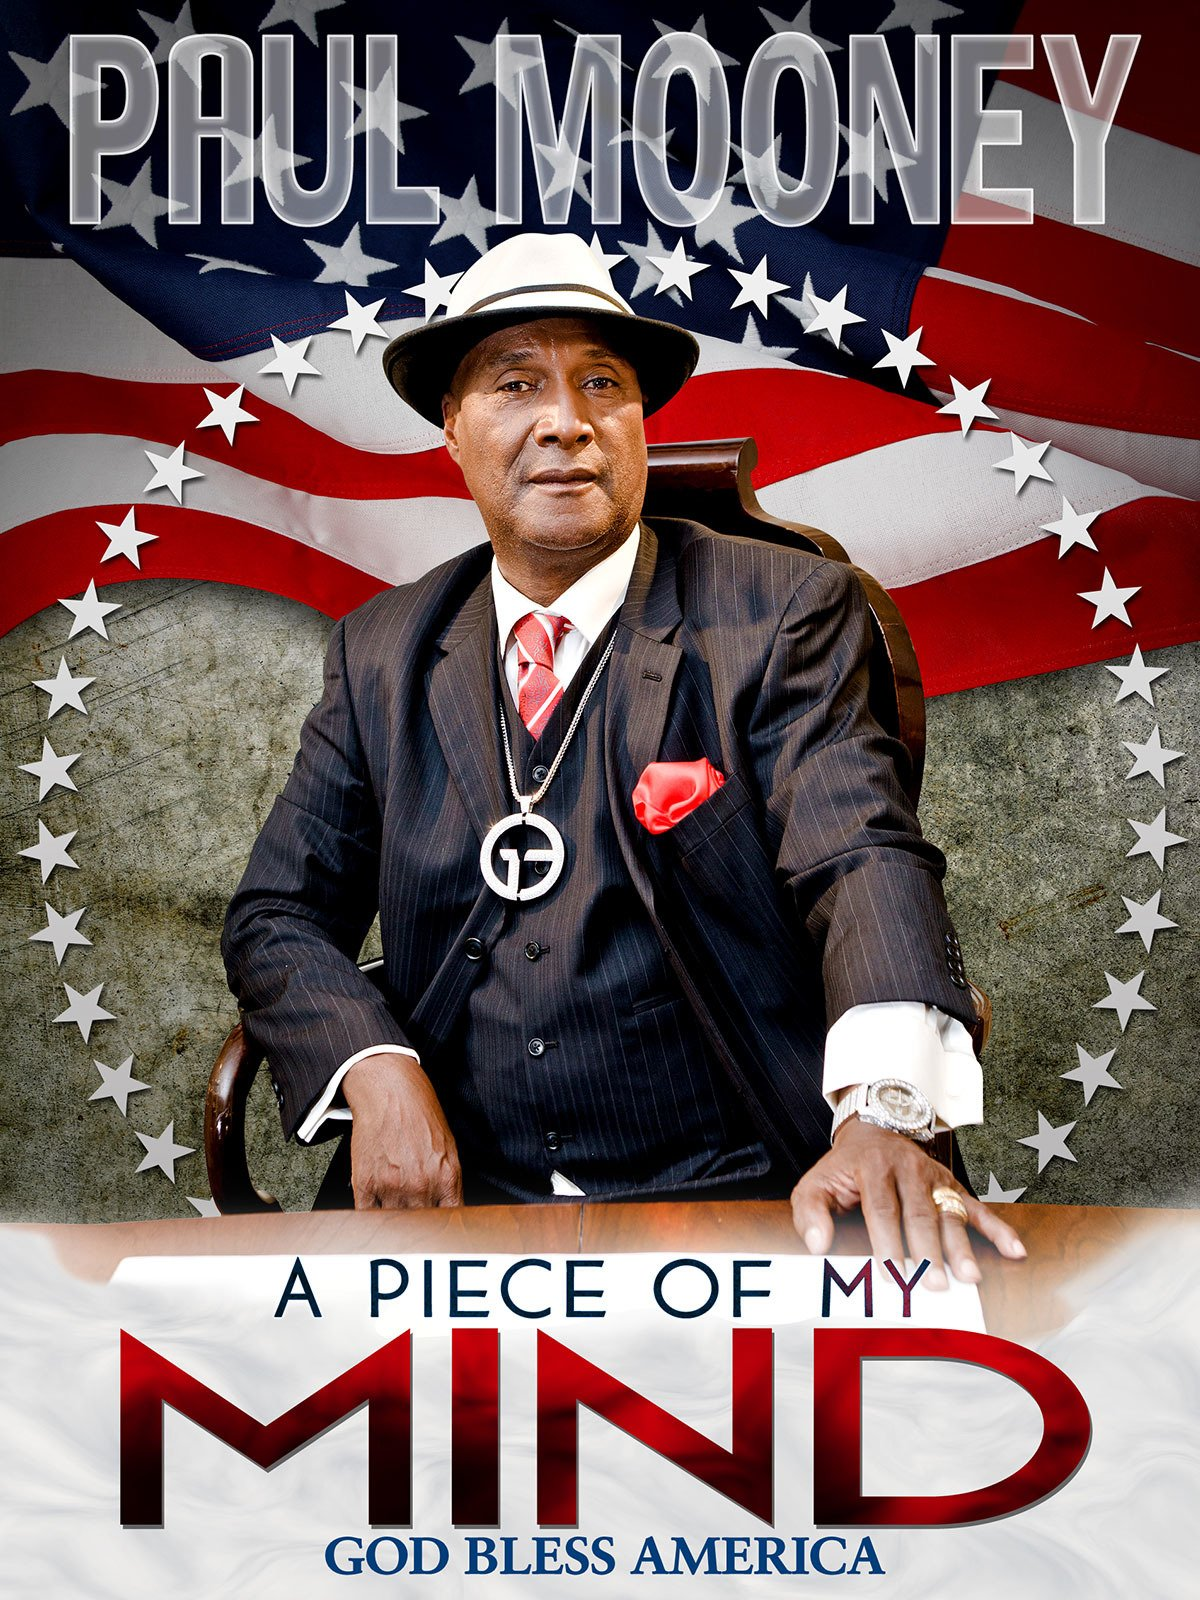 Paul Mooney: A Piece of My Mind on Amazon Prime Instant Video UK